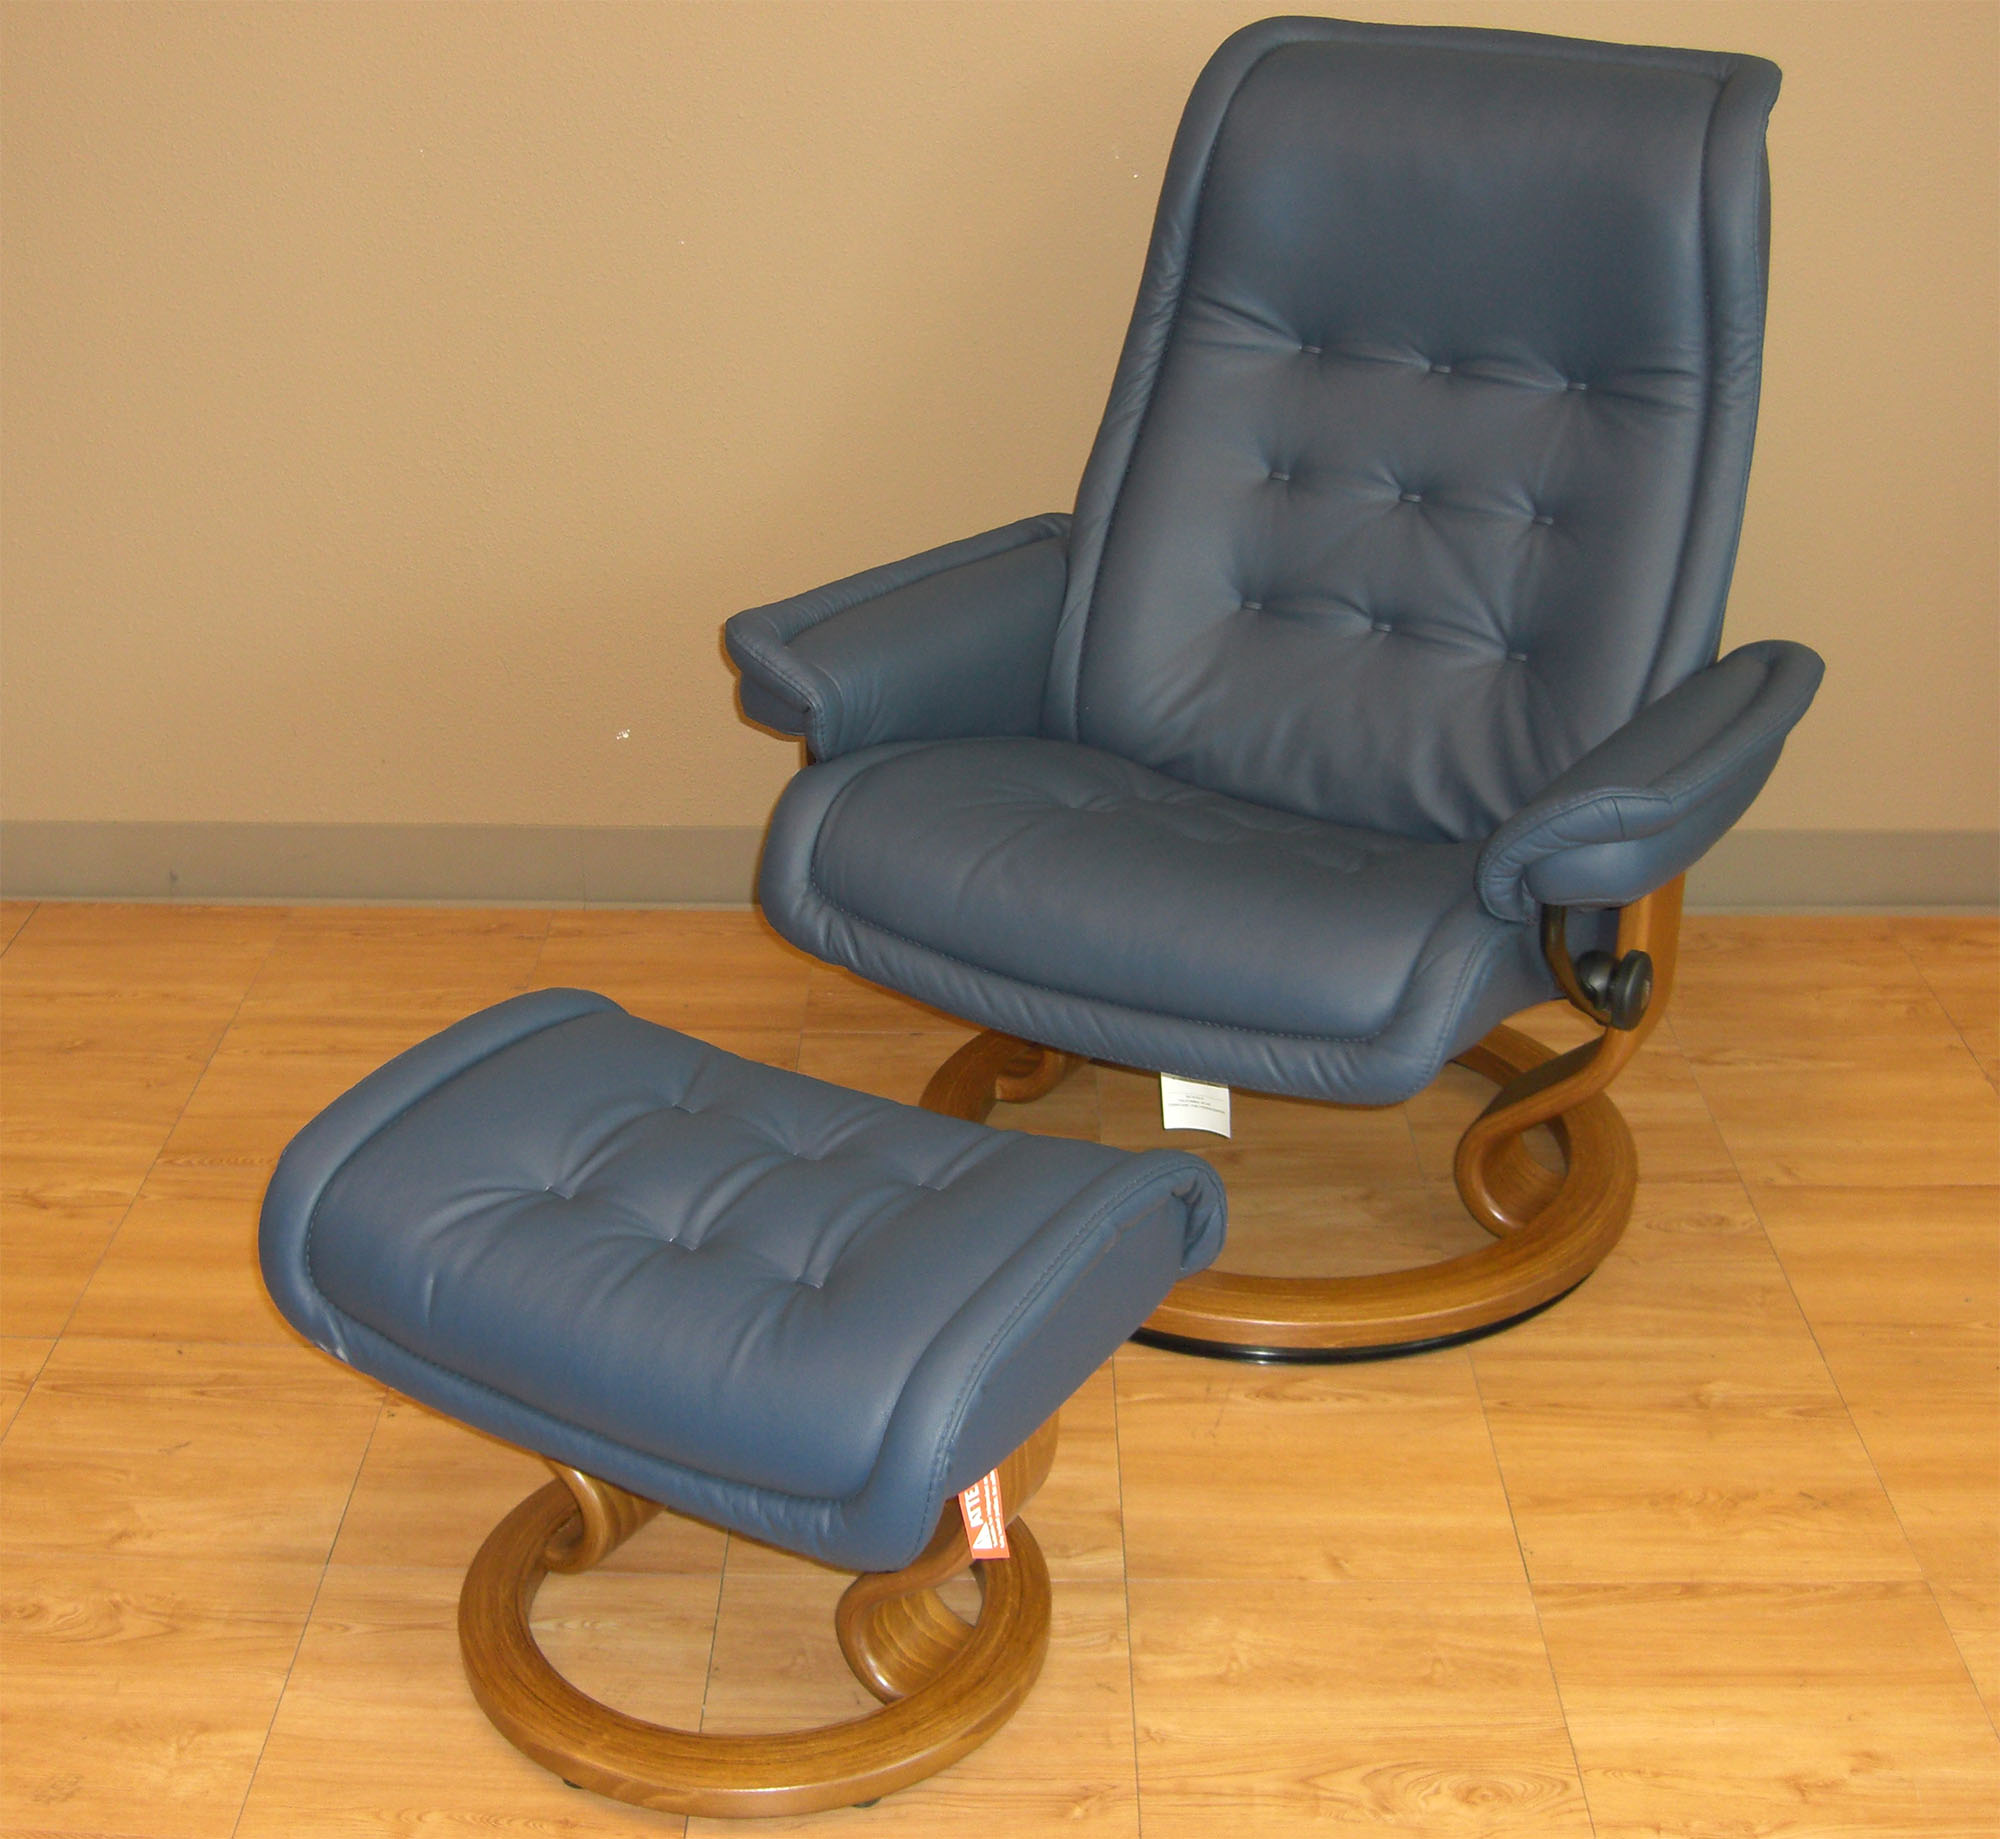 Stressless Paloma Oxford Blue 09418 Leather By Ekornes Stressless Paloma Oxford Blue 09418